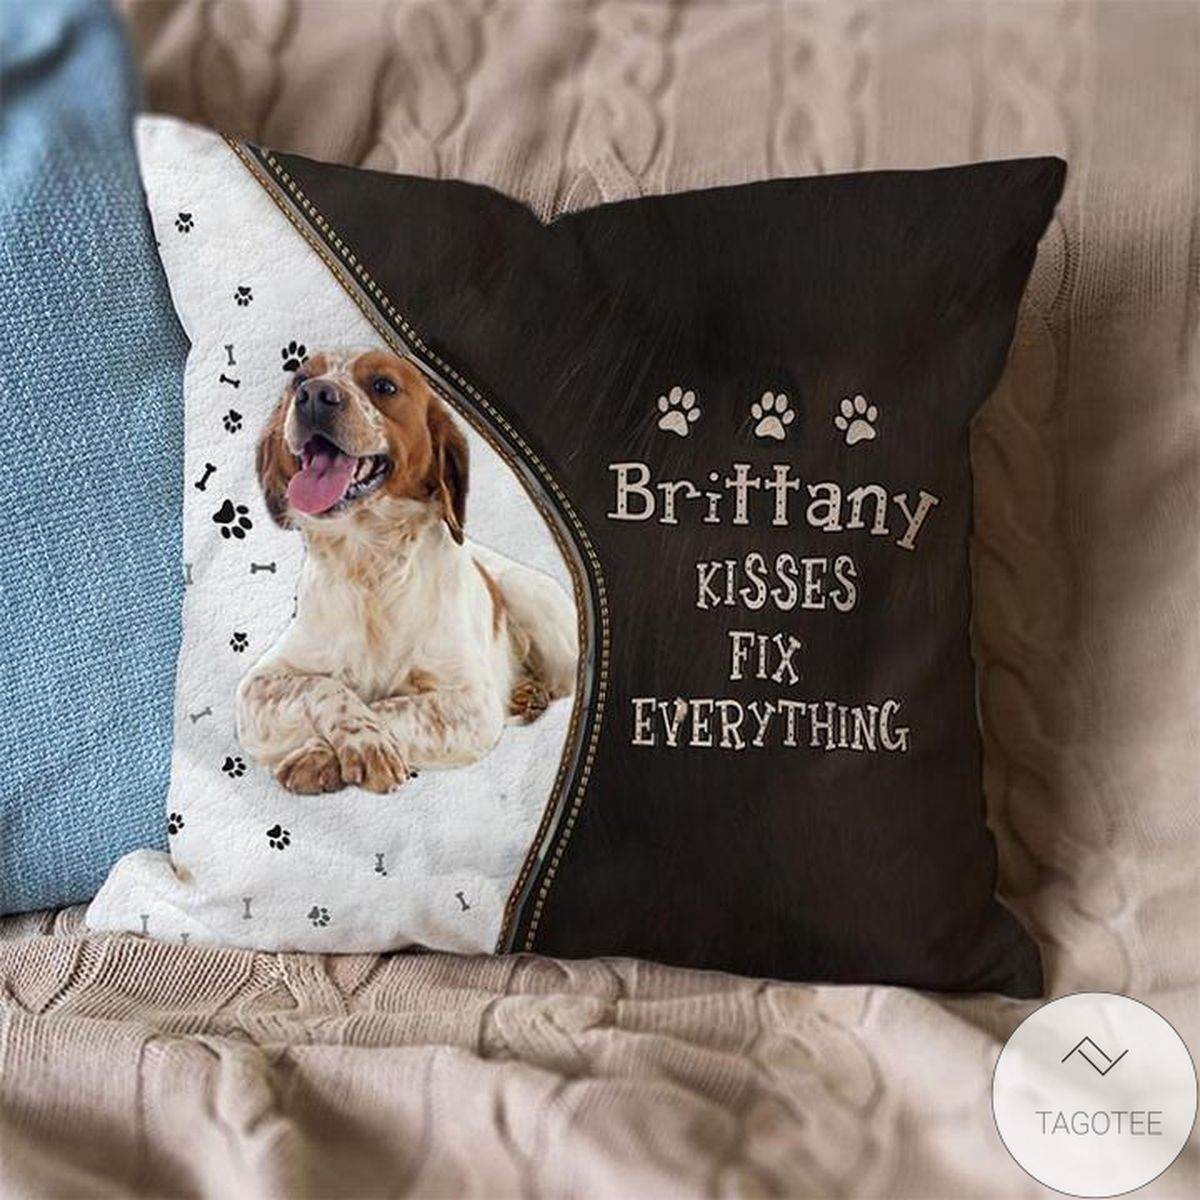 New Brittany Kisses Fix Everything Pillowcase